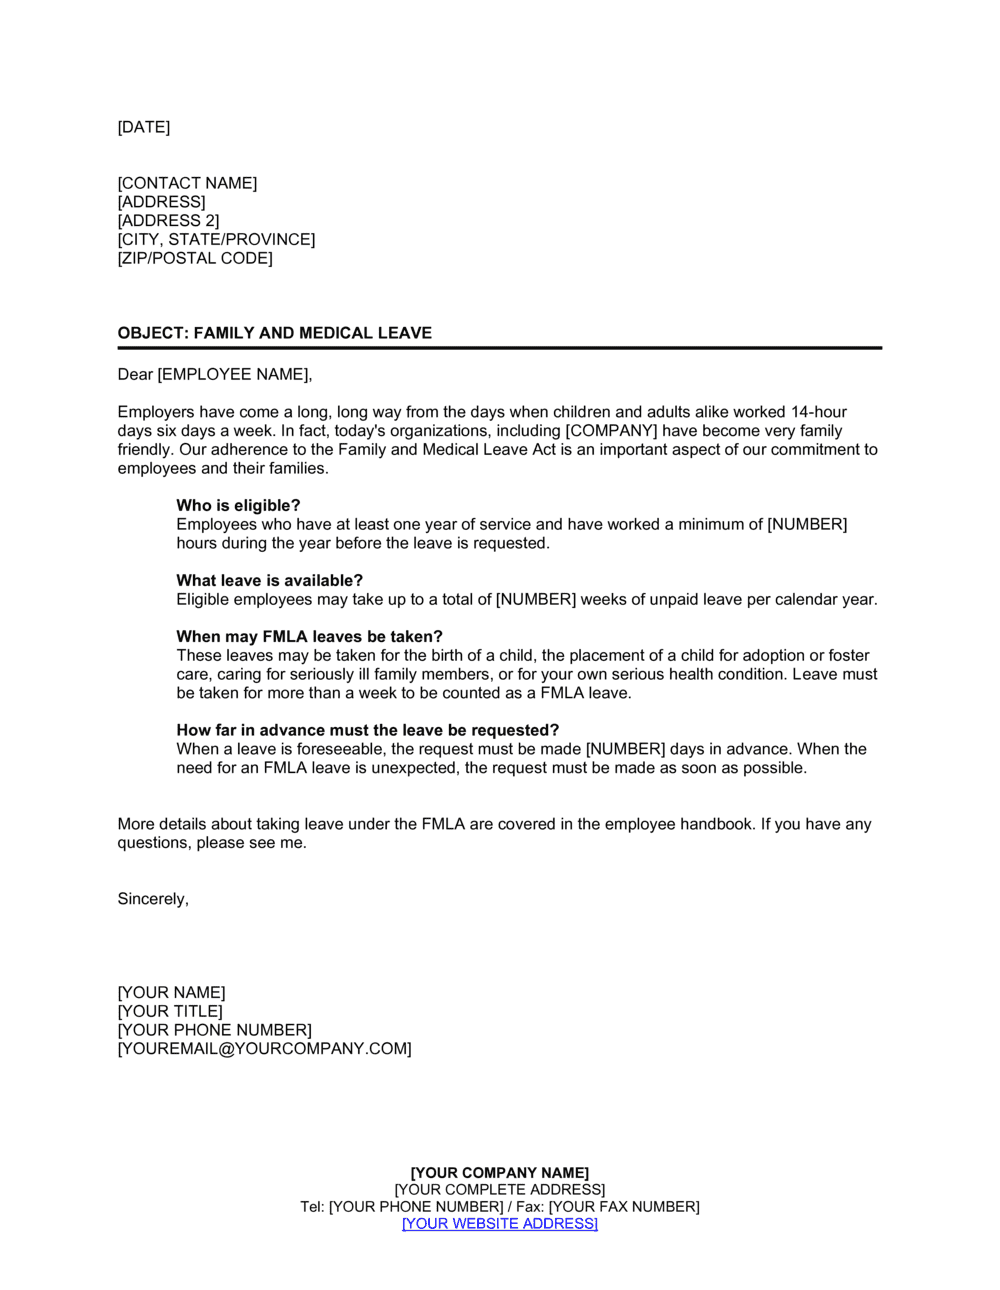 Business-in-a-Box's Letter Explaining Family and Medical Leave Template